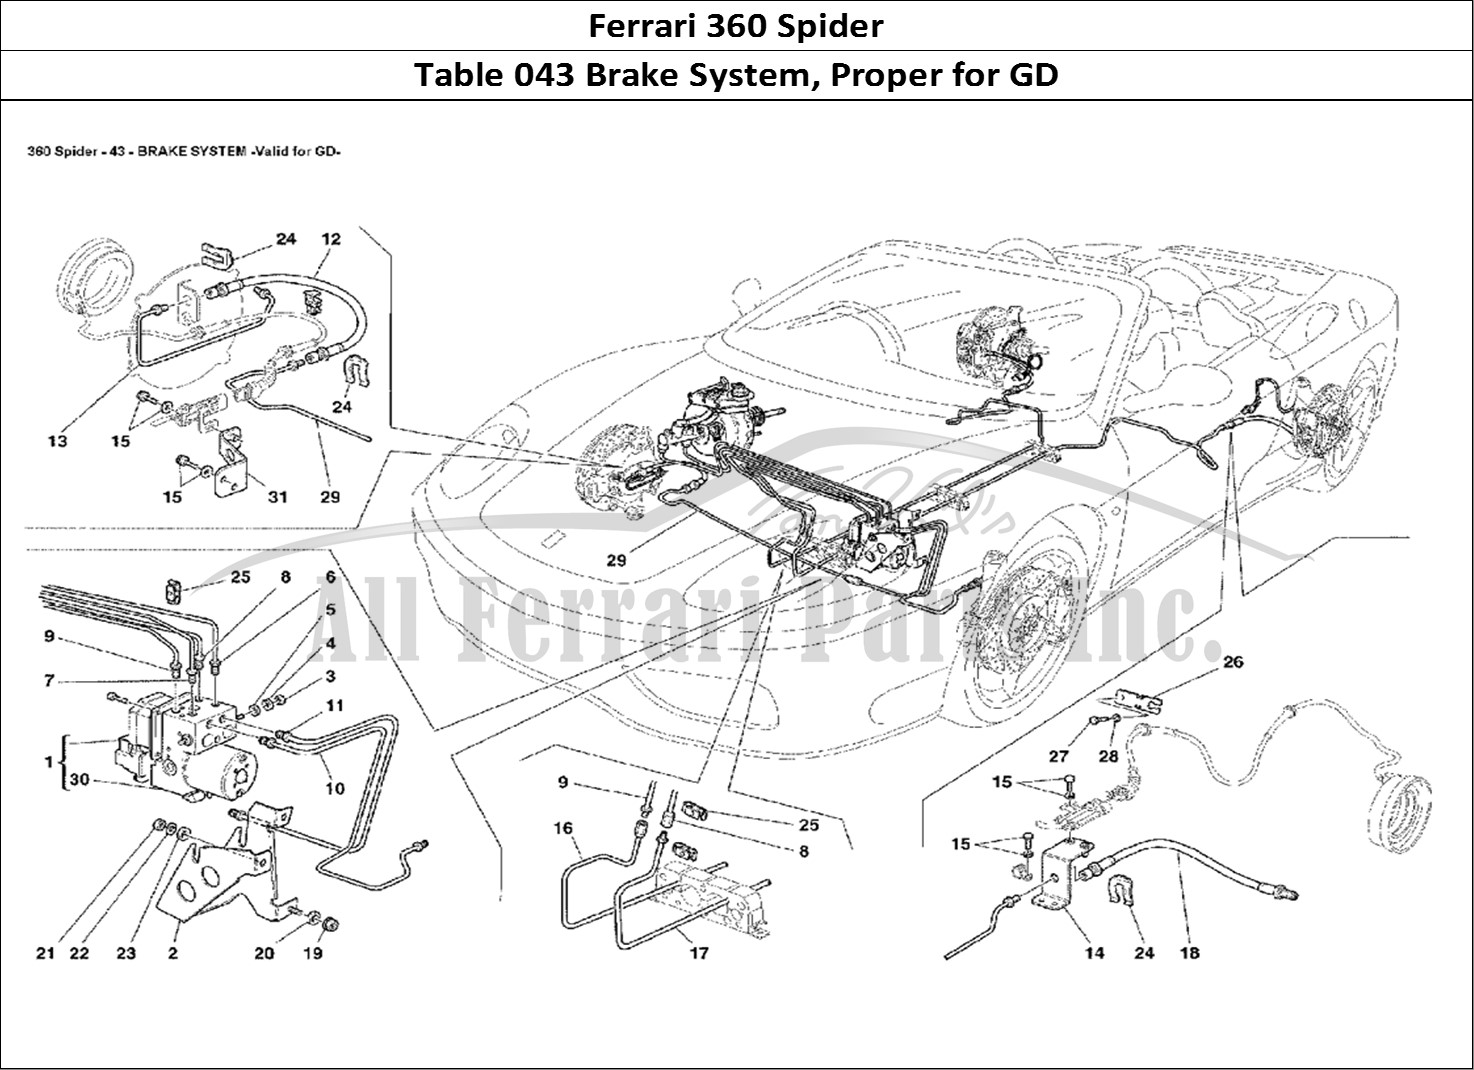 Buy original Ferrari 360 Spider 043 Brake System, Proper